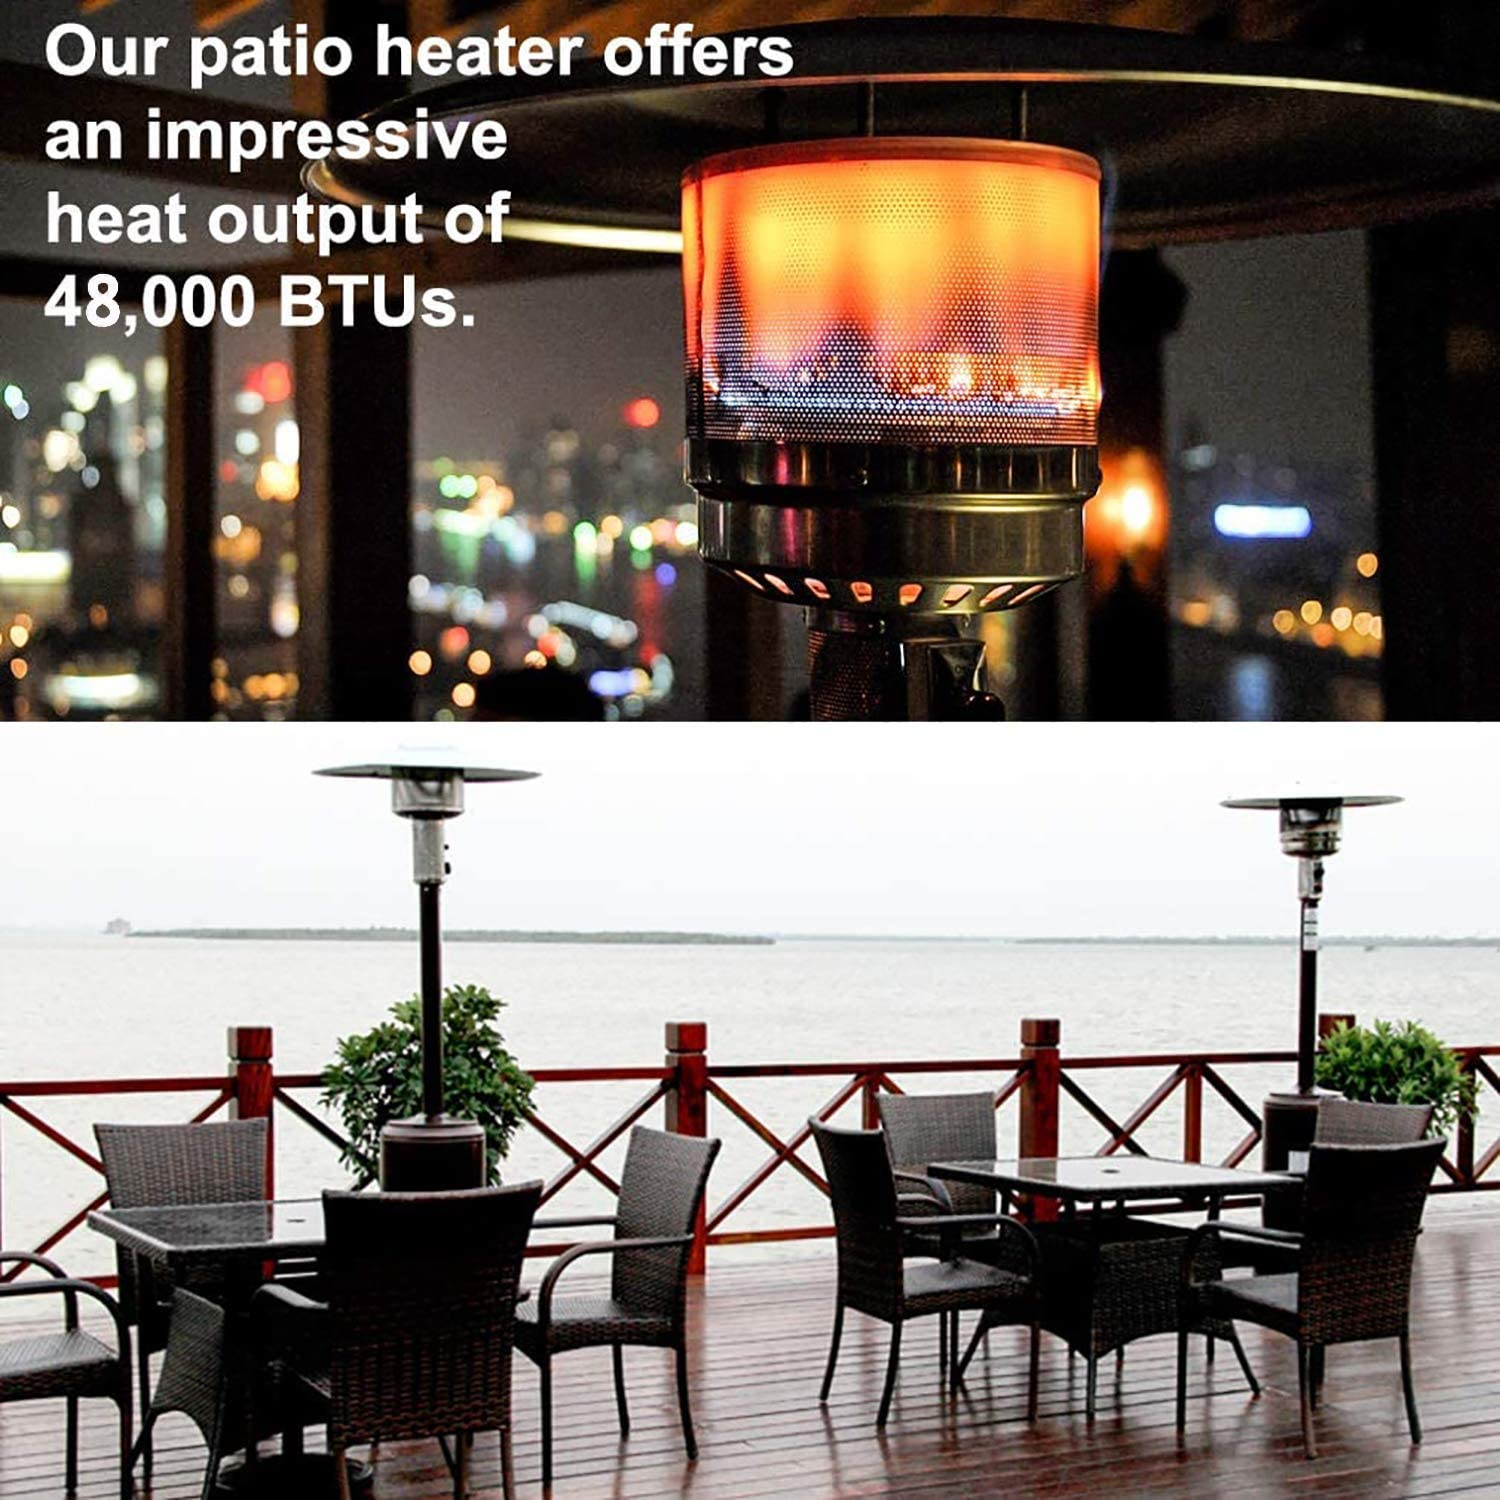 hmercy Outdoor Heater Patio Heaters Propane Outdoor Heater 48000BTU Tall Standing Gardens Heater with Wheels Portable Commercial Outdoor Heater